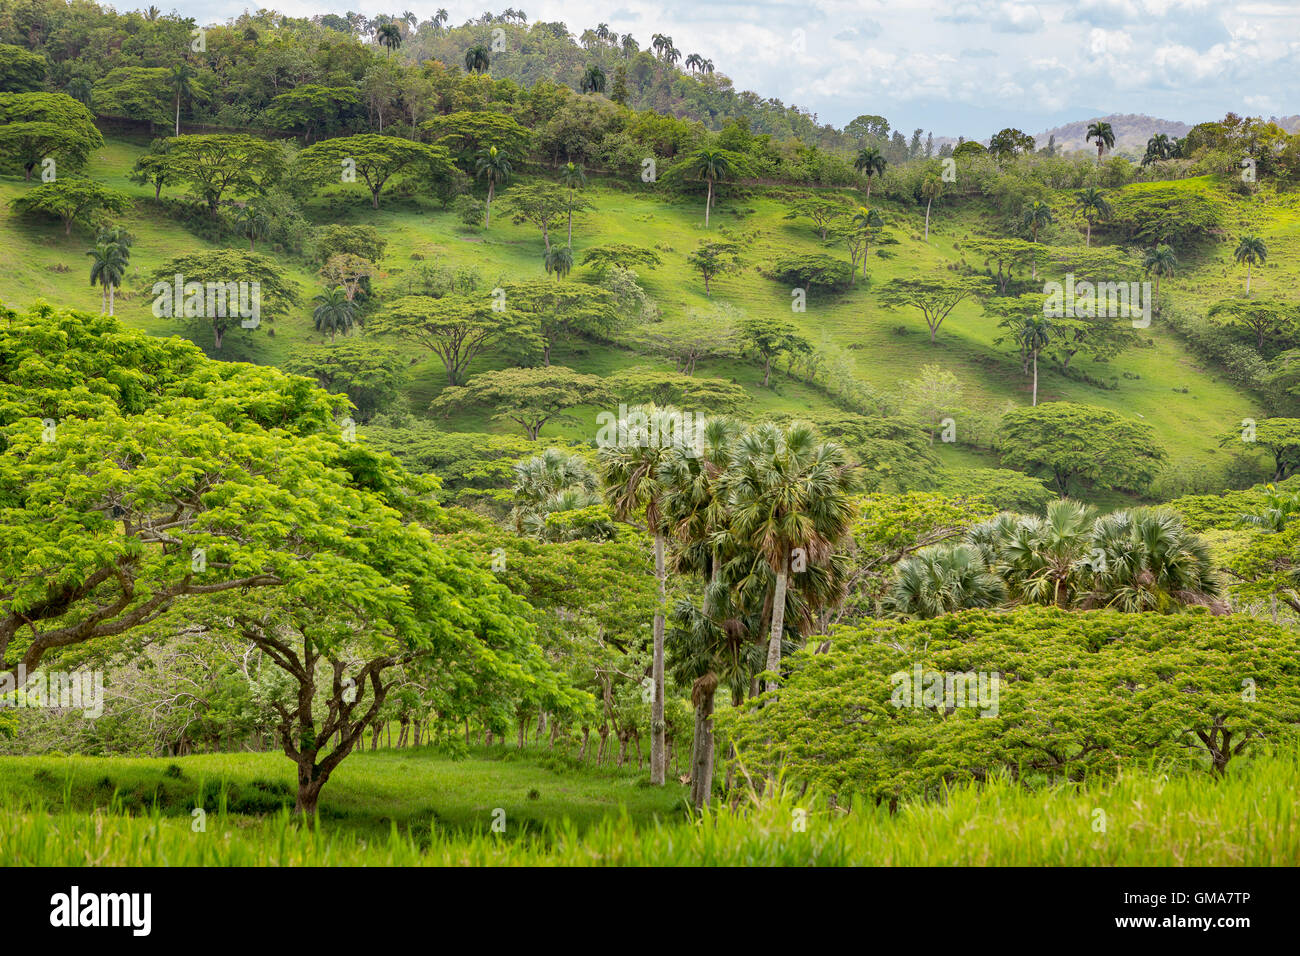 DOMINICAN REPUBLIC - Landscape in mountains, northern DR. - Stock Image